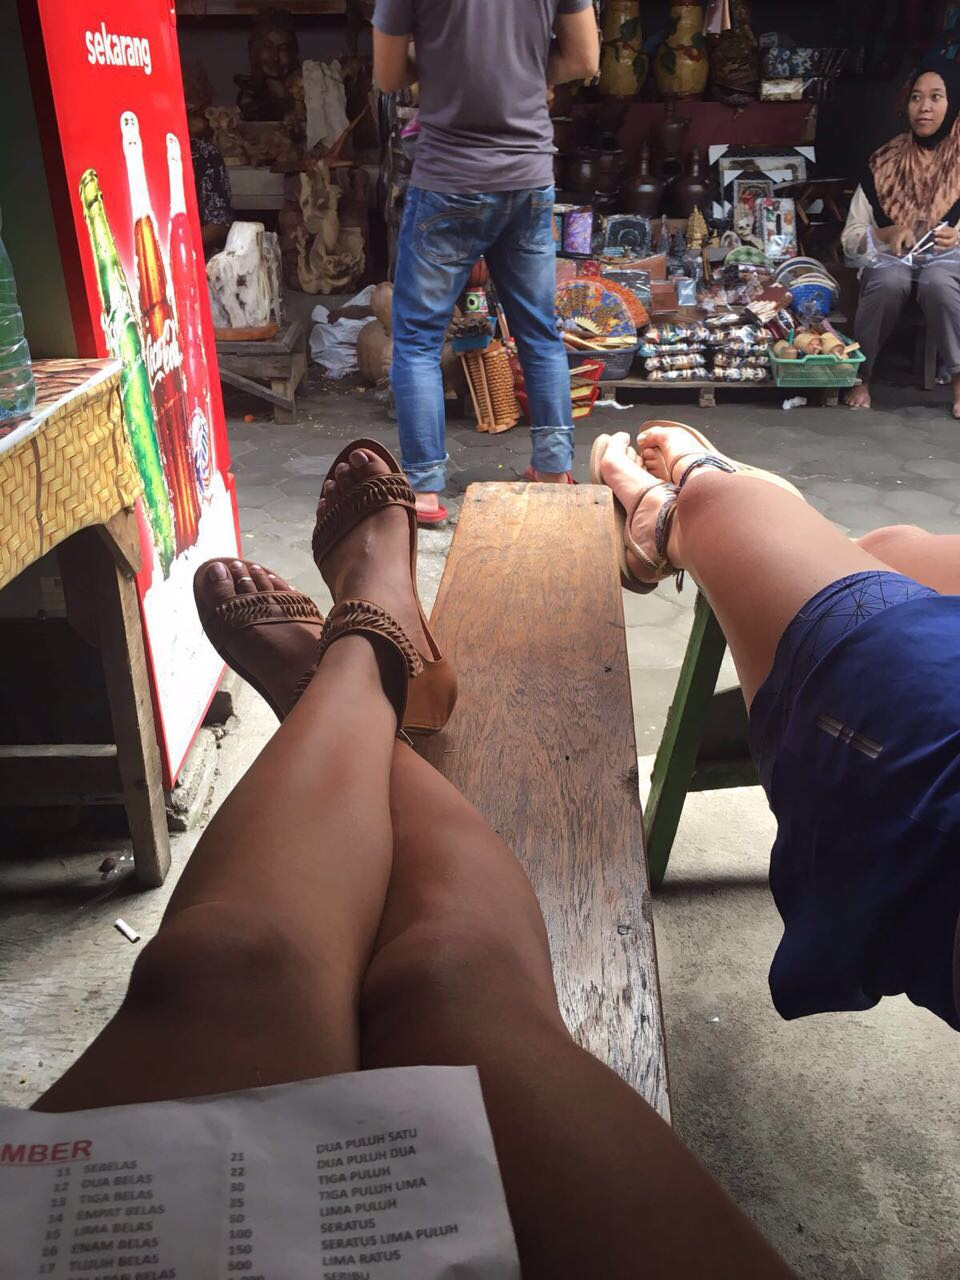 Putting our feet up in one of the local market warungs outside Prambanan temple